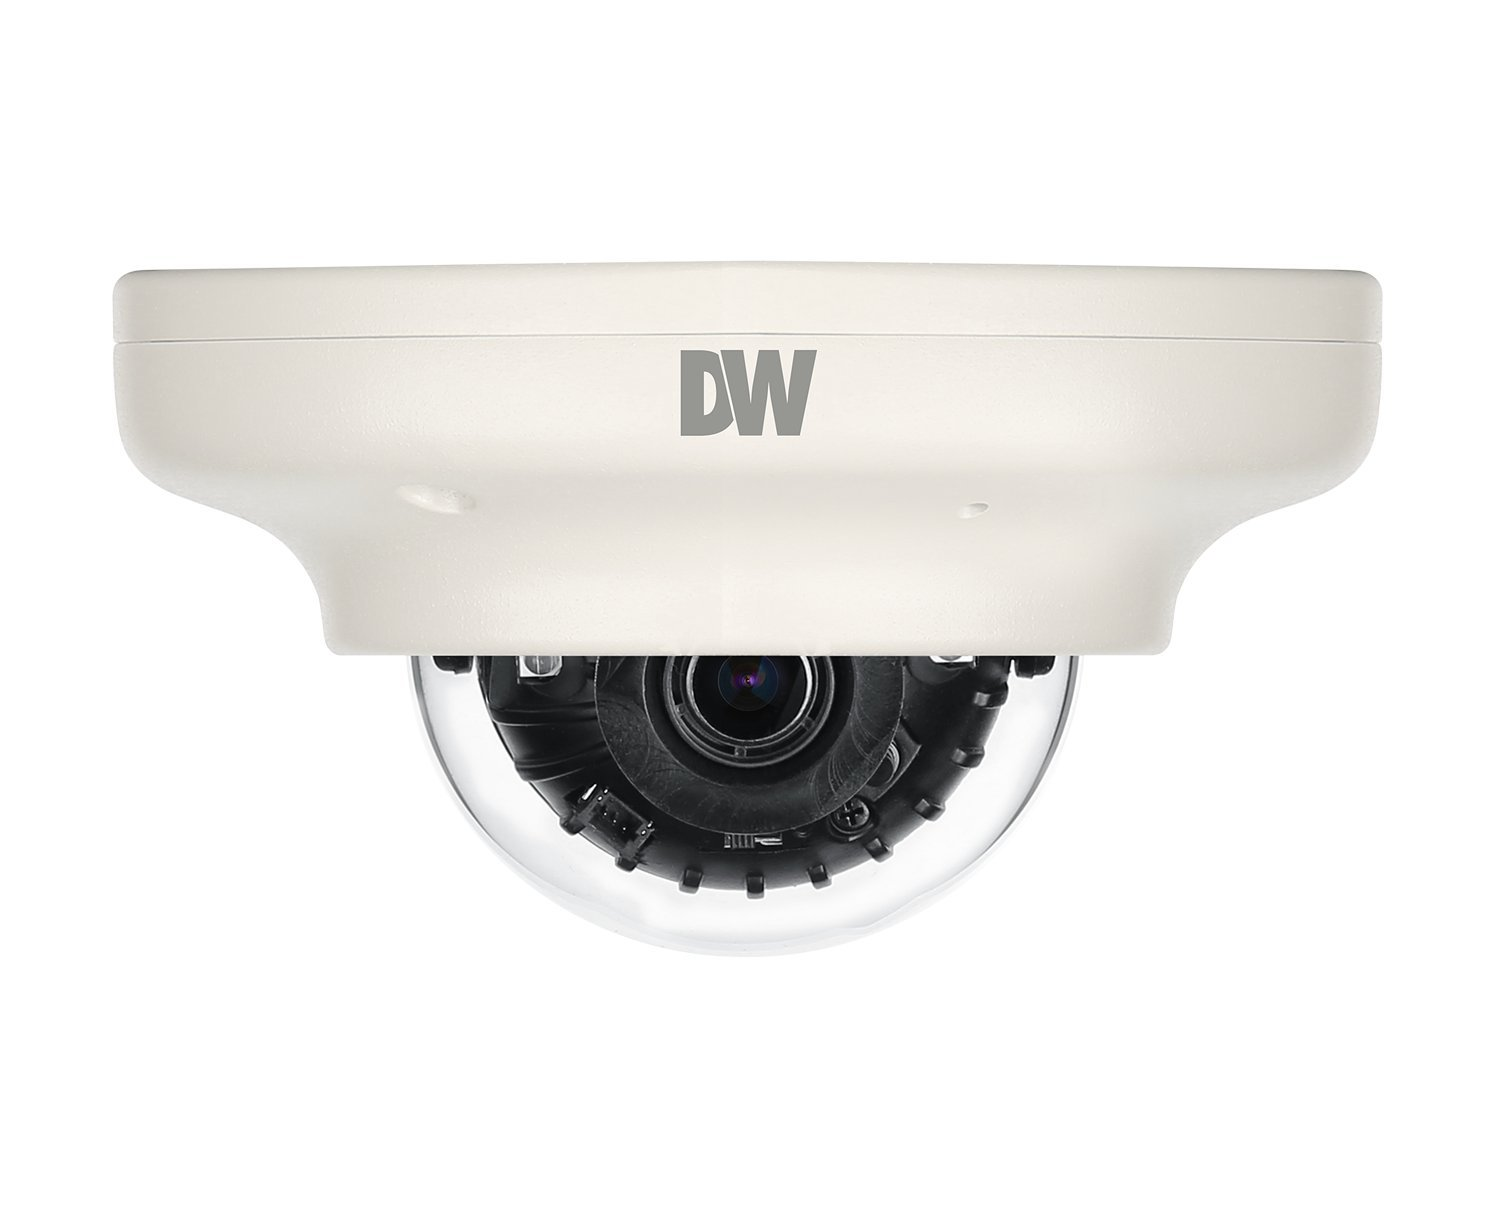 Digital Watchdog Analog High Definition Vandal Dome (DWC-V7753TIR)